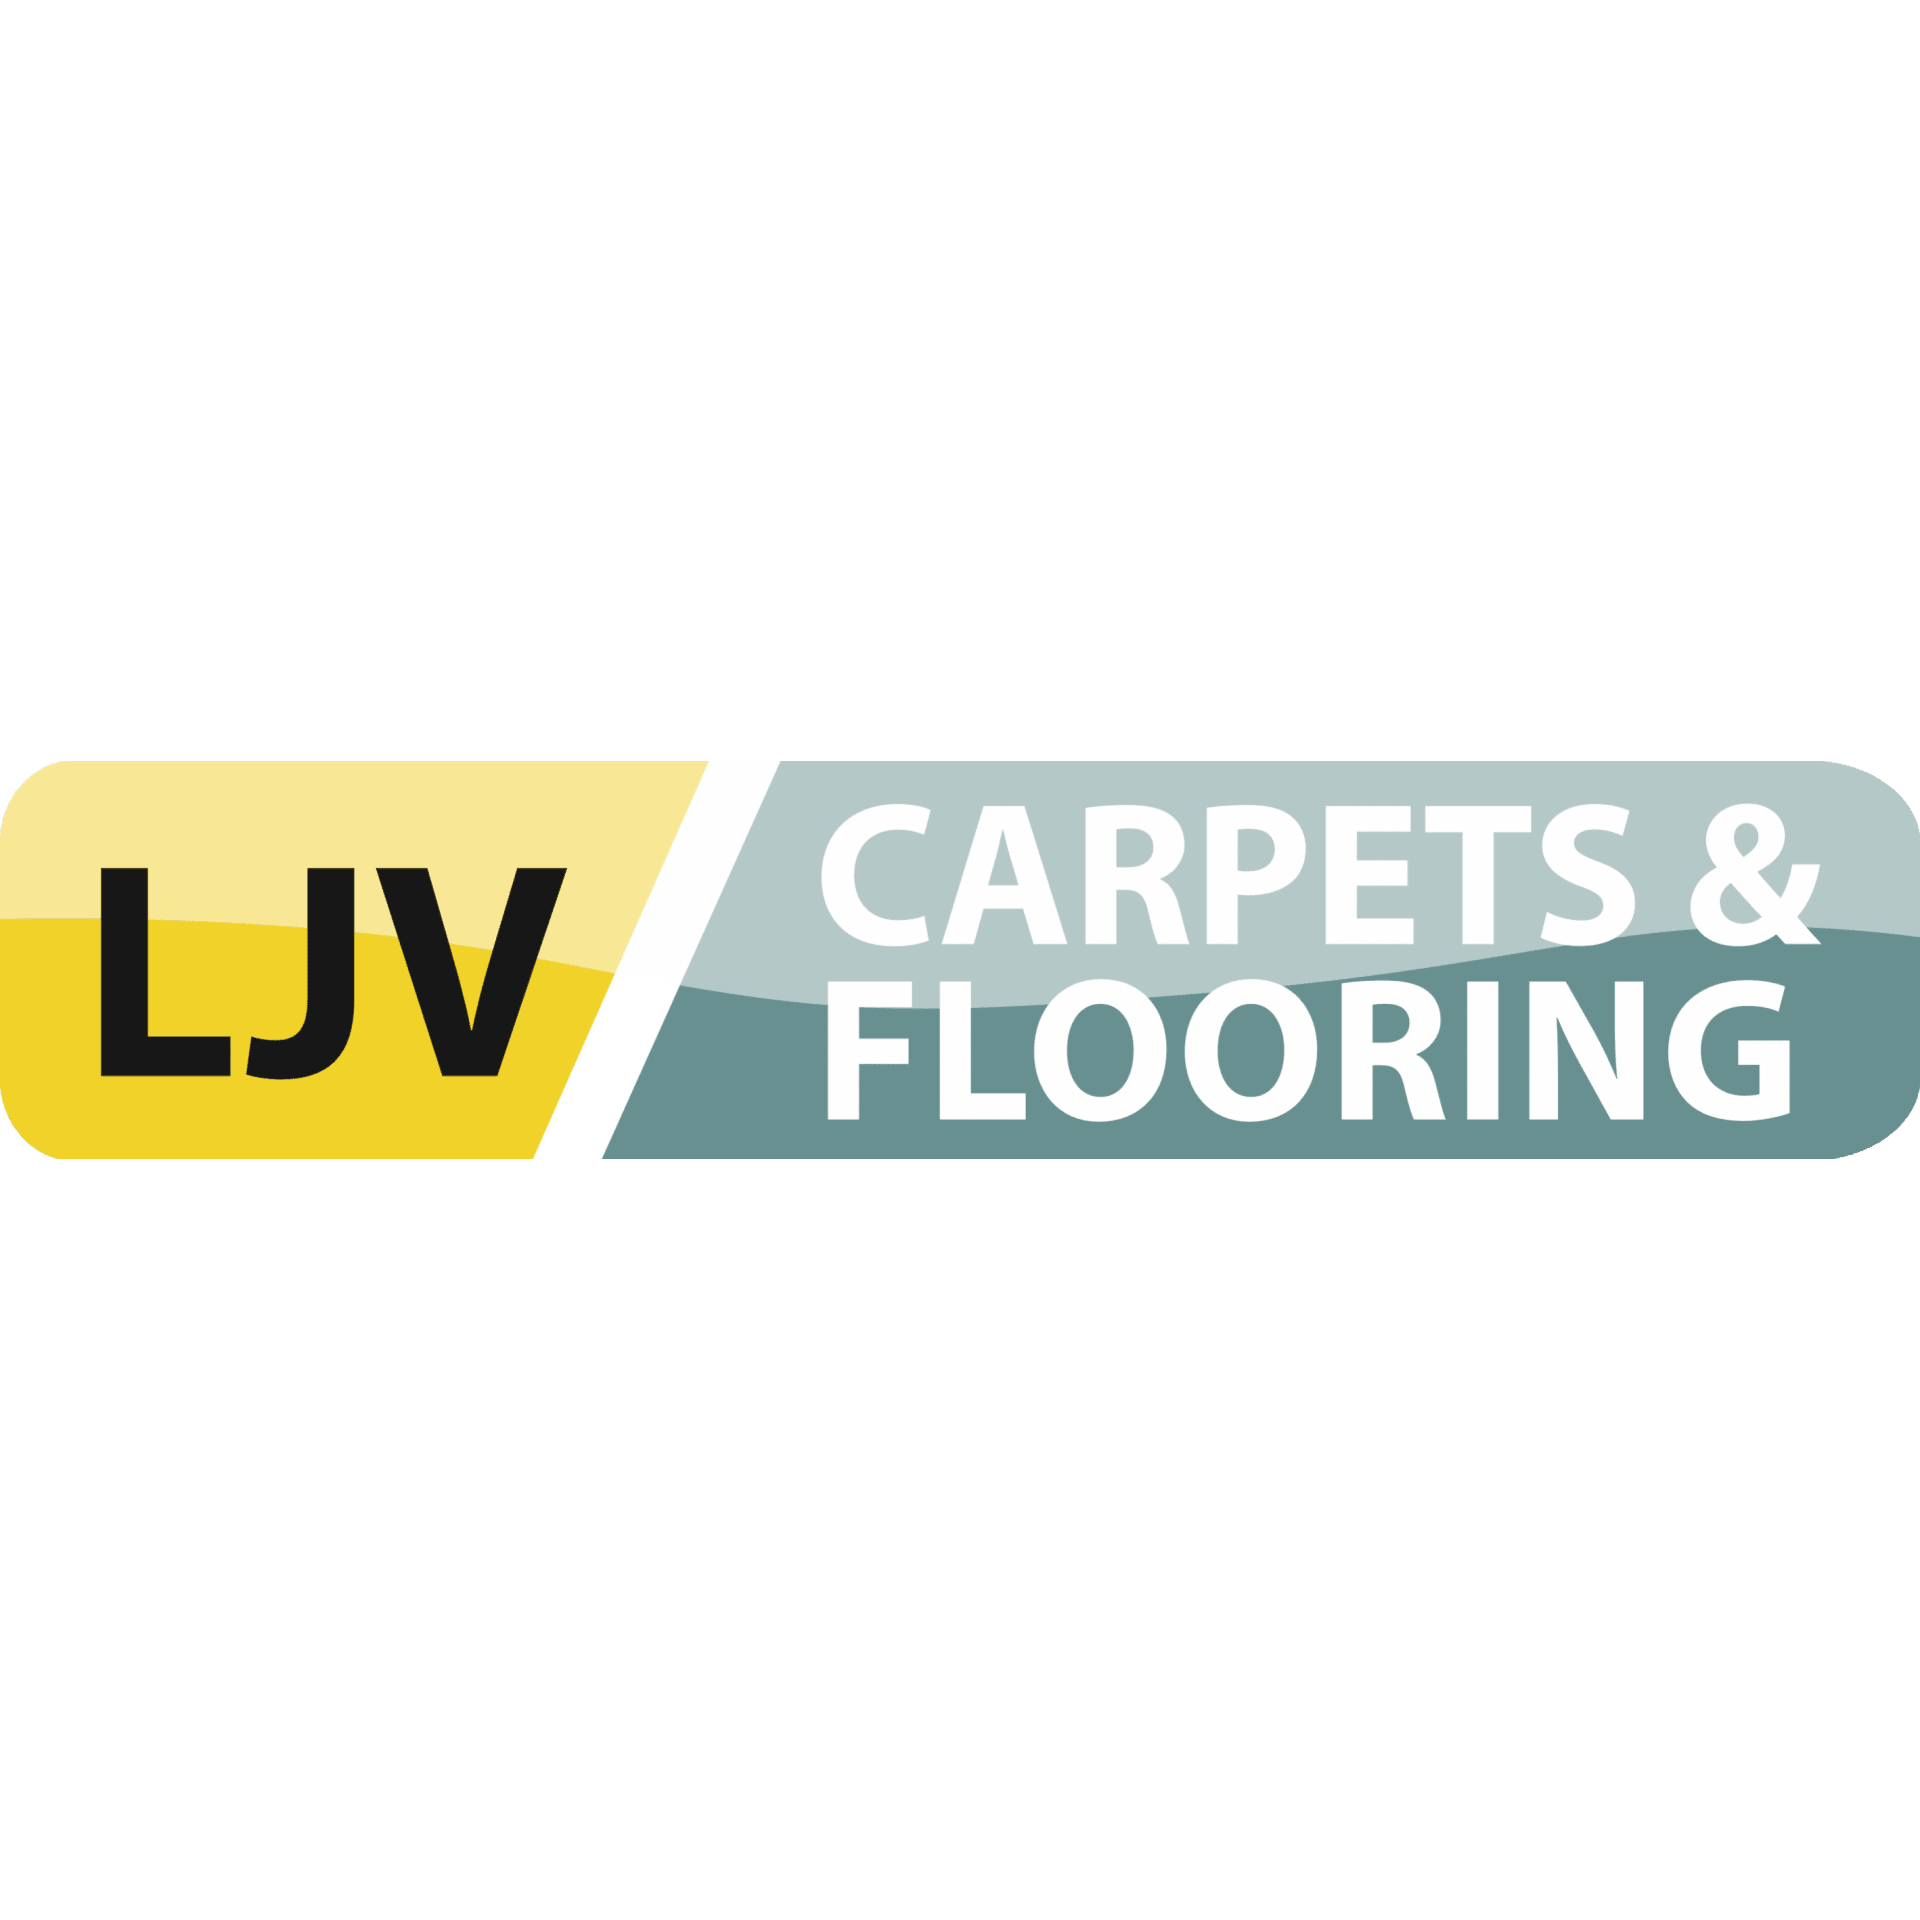 LJV Carpets & Flooring - Leigh, Lancashire WN7 1AT - 01942 369017 | ShowMeLocal.com